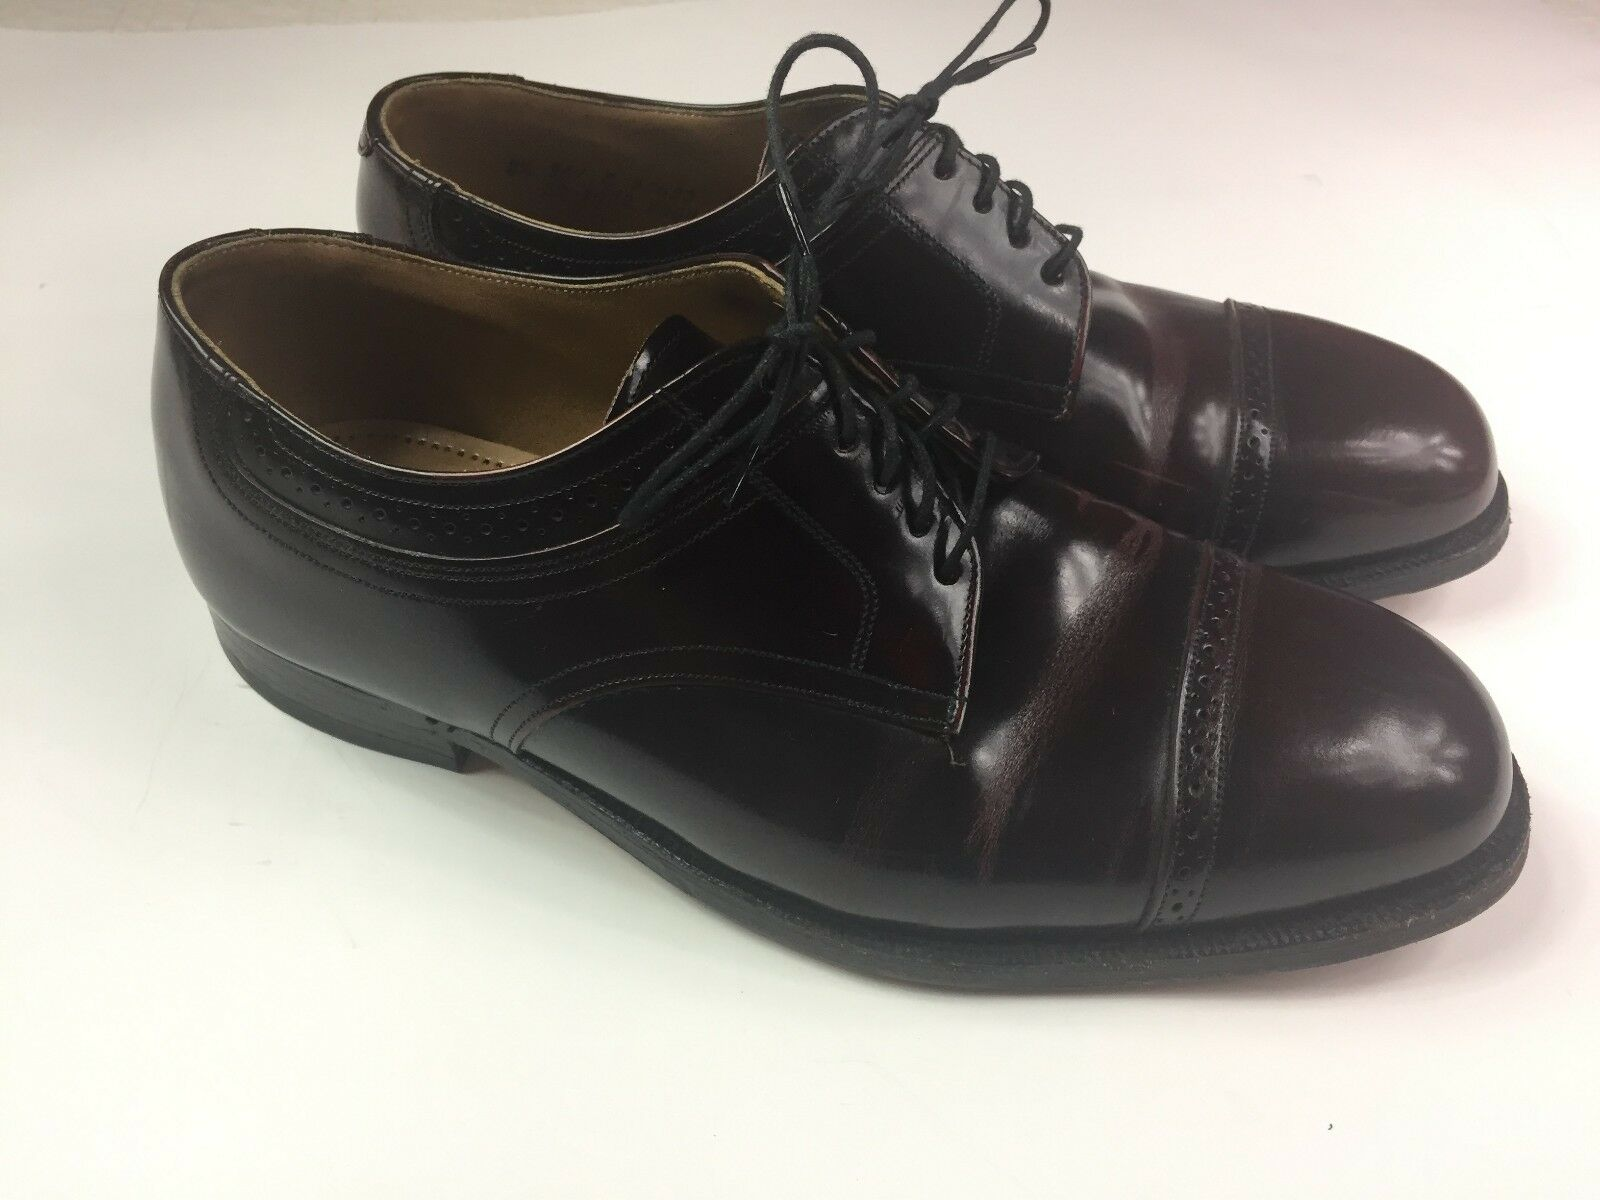 JOHNSTON & MURPHY Burgundy Traditions Dress Shoes Oxford Burgundy MURPHY Wingtip Men's Size 8.5 959e49